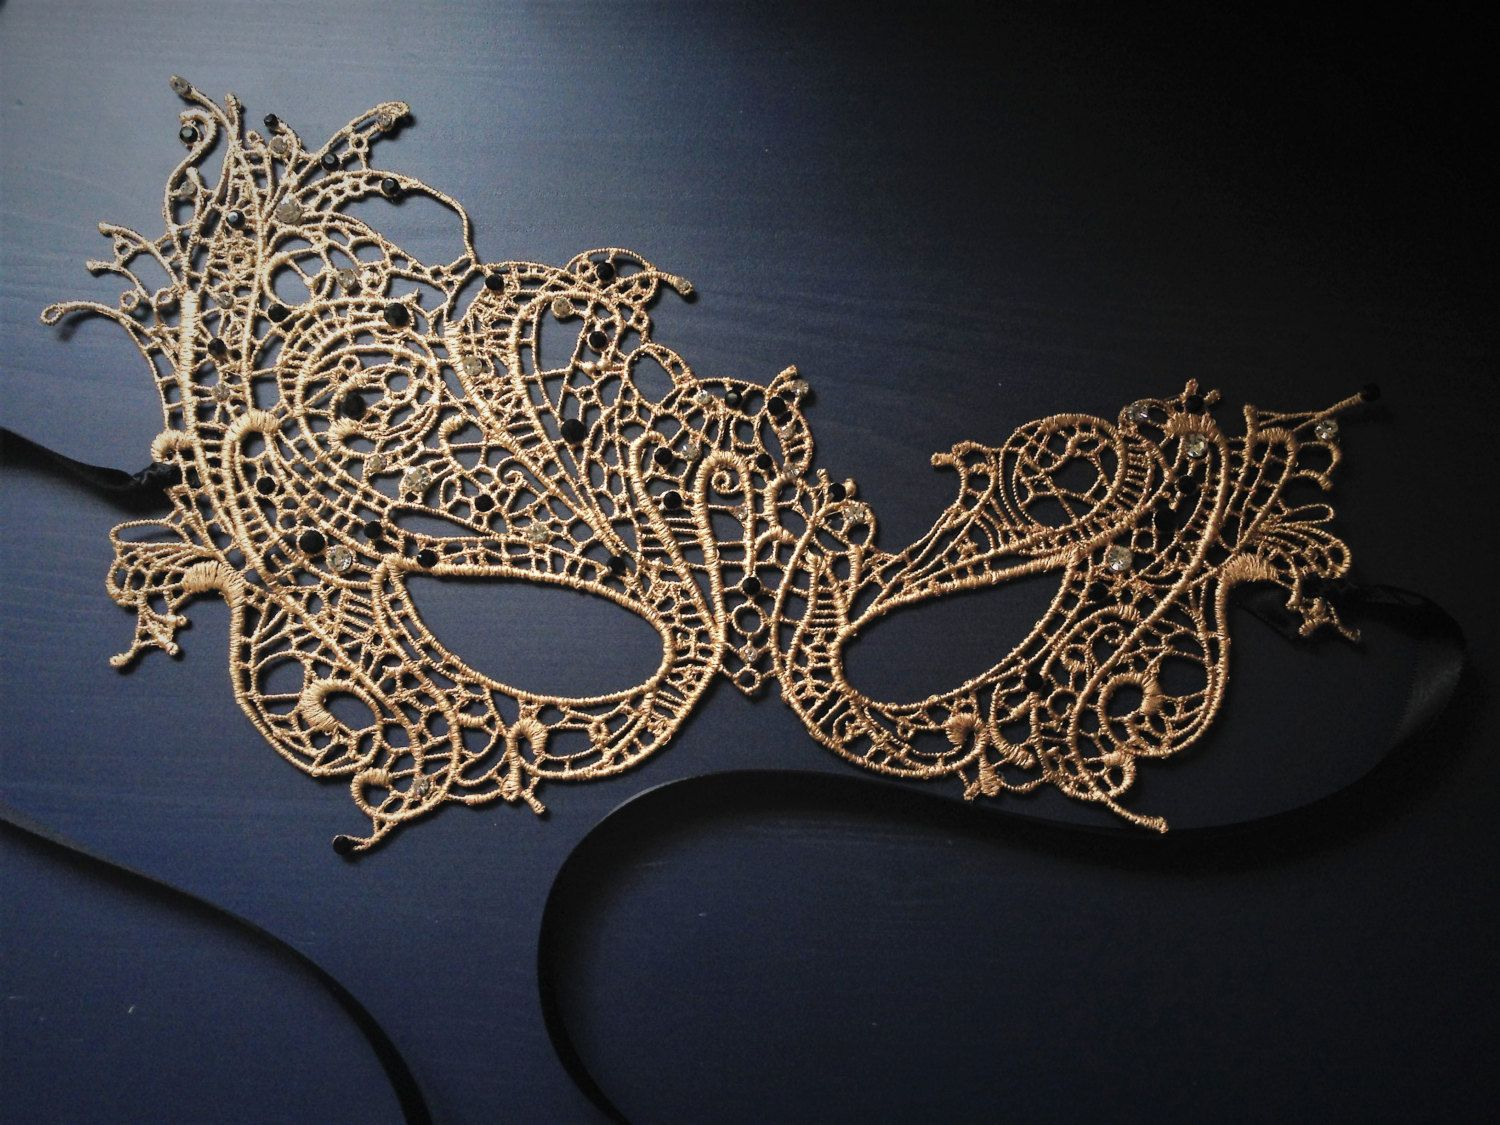 Masquerade mask masquerade mask vine mask metal lace masquerade - Gold And Jet Black Studded Butterfly Masquerade Mask For Women Lace Mask In Gold Or Custom Colored